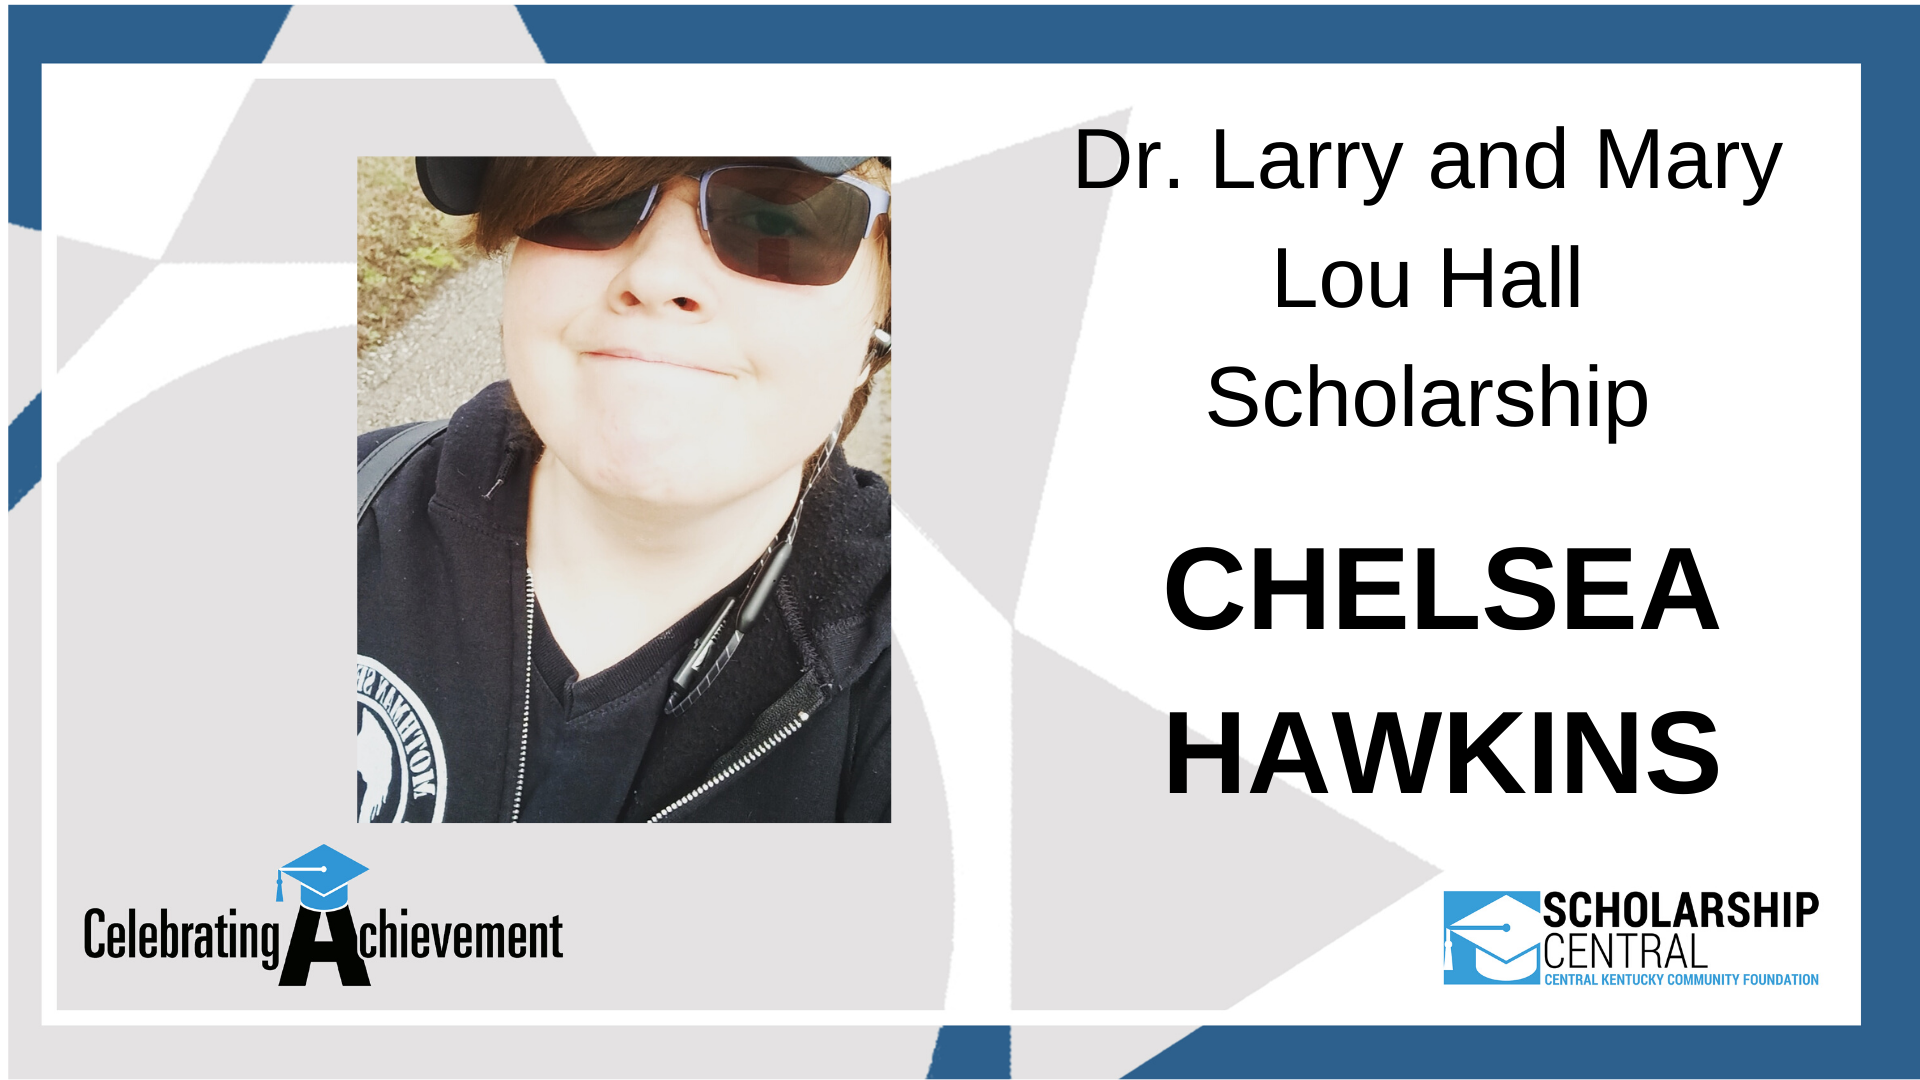 Dr. Larry and Mary Lou Hall Scholarship